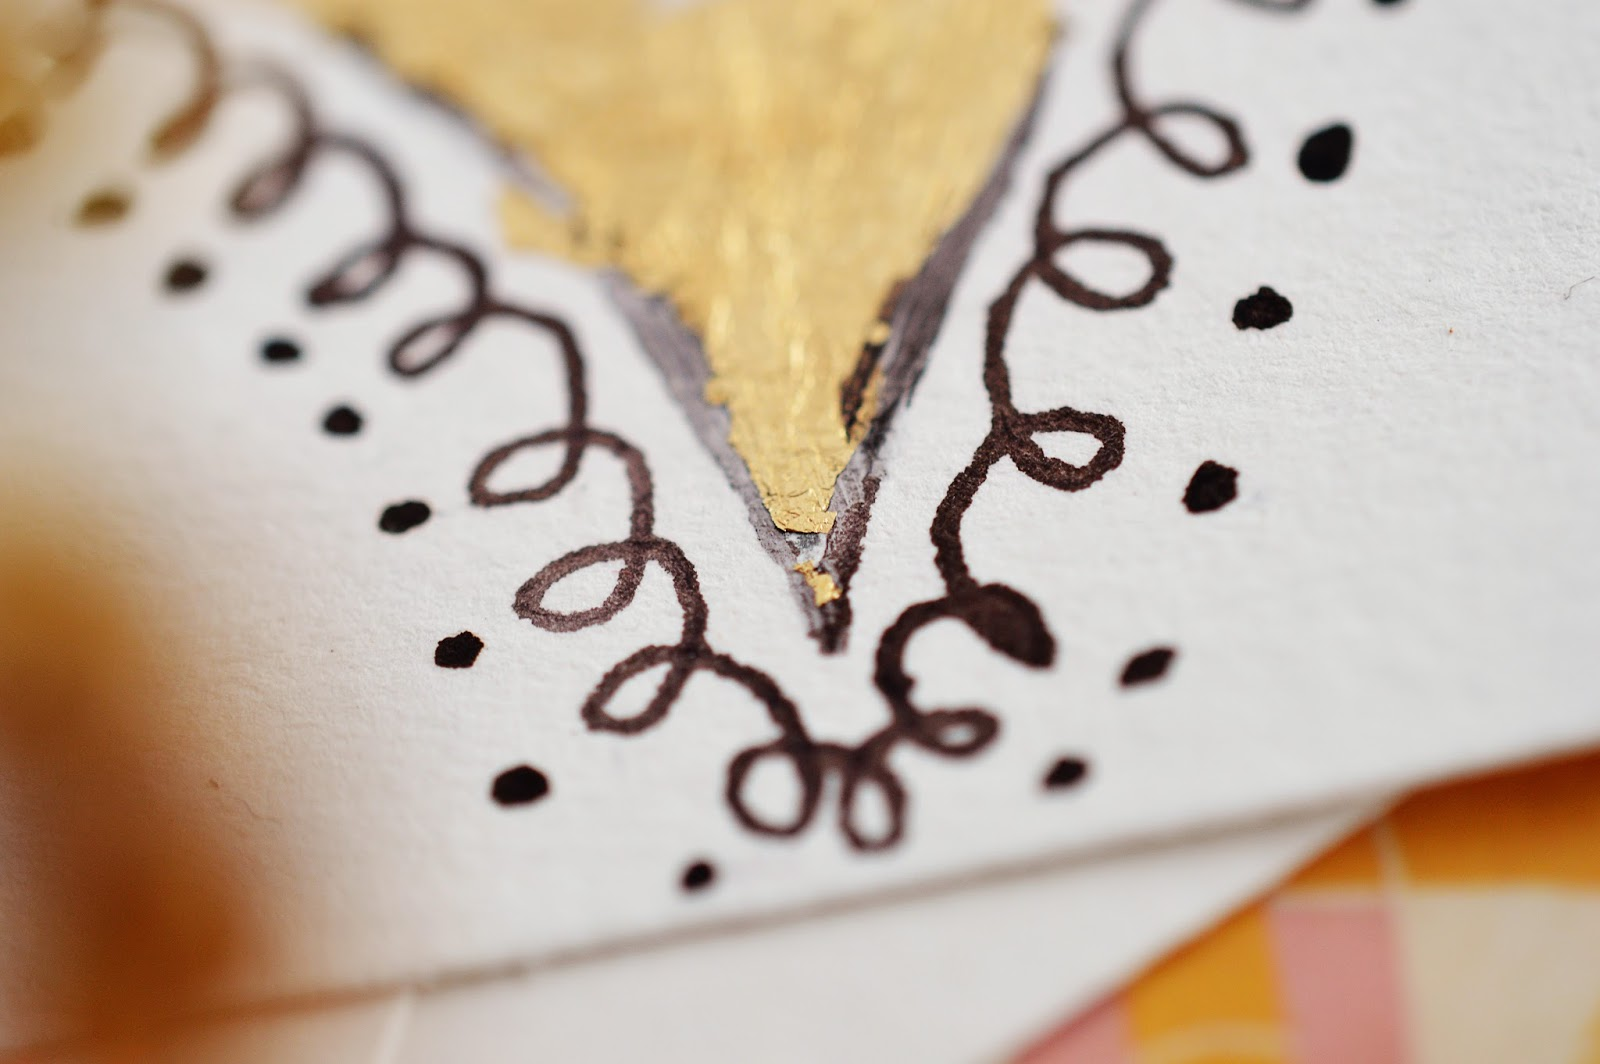 DIY Warhol-Inspired Gold Leaf Painting | Motte's Blog